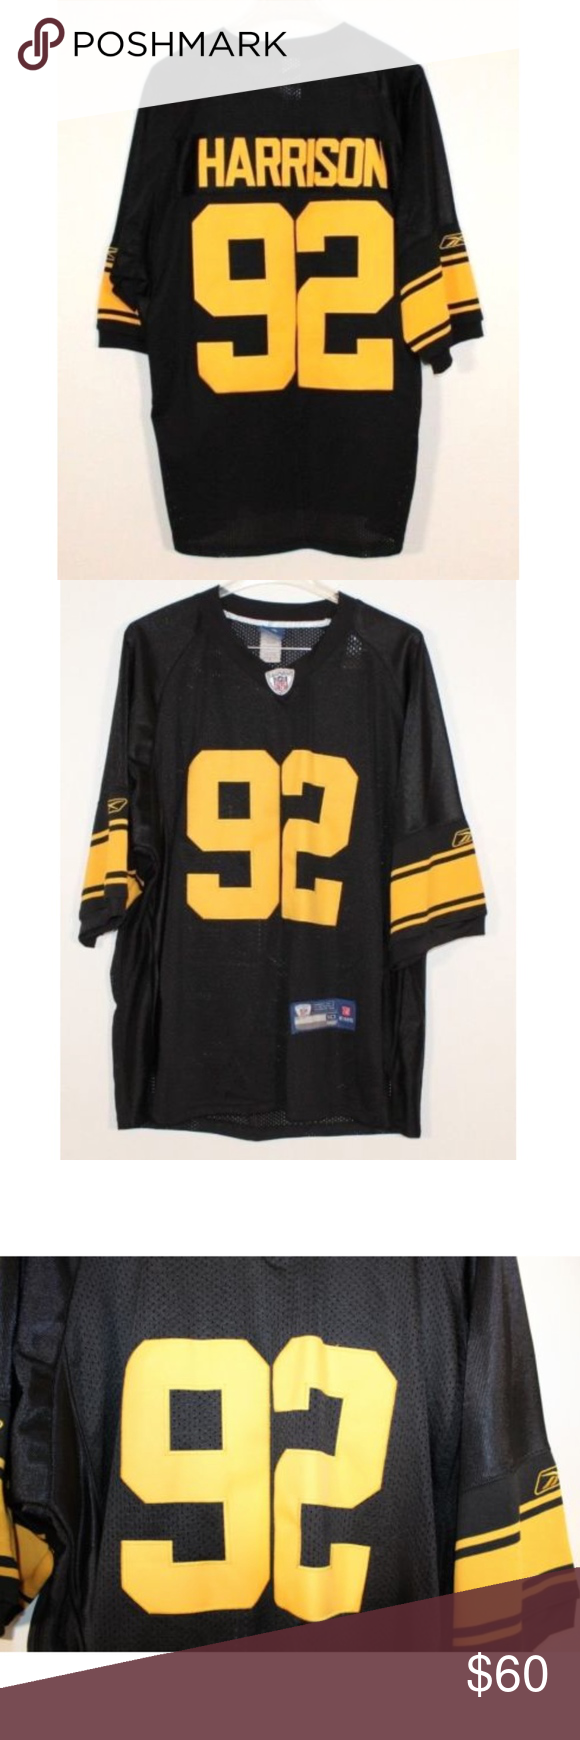 huge discount 1ee32 a4af1 Reebok] James Harrison Steelers Throwback Jersey Reebok On ...